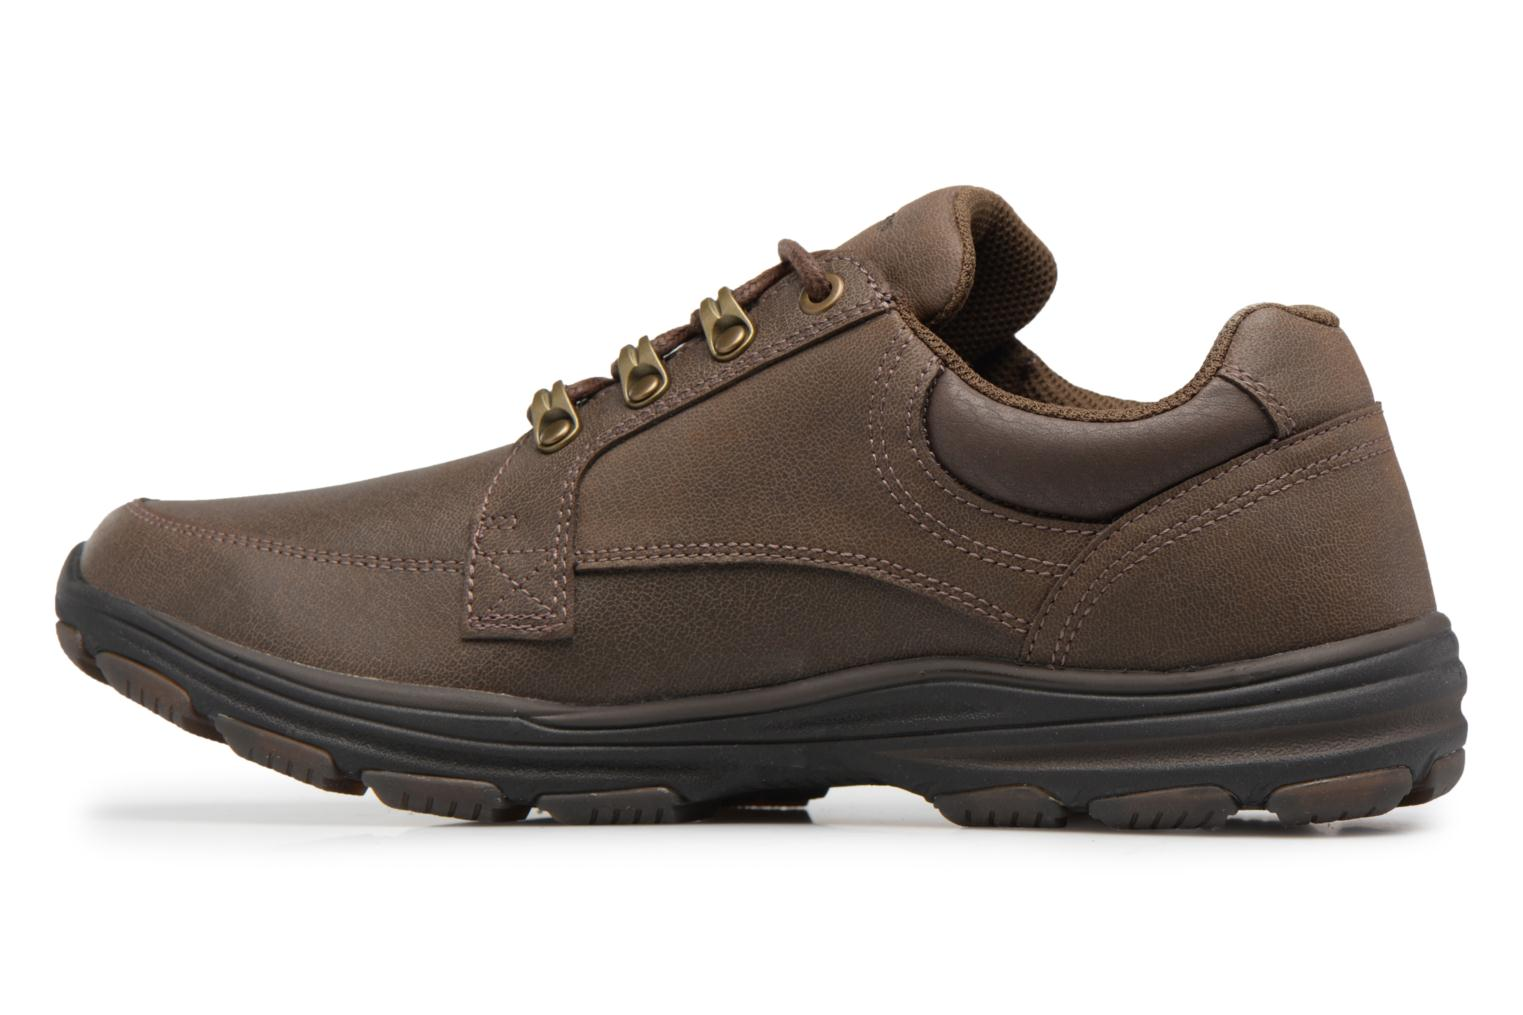 Baskets Skechers Garton-Briar Marron vue face